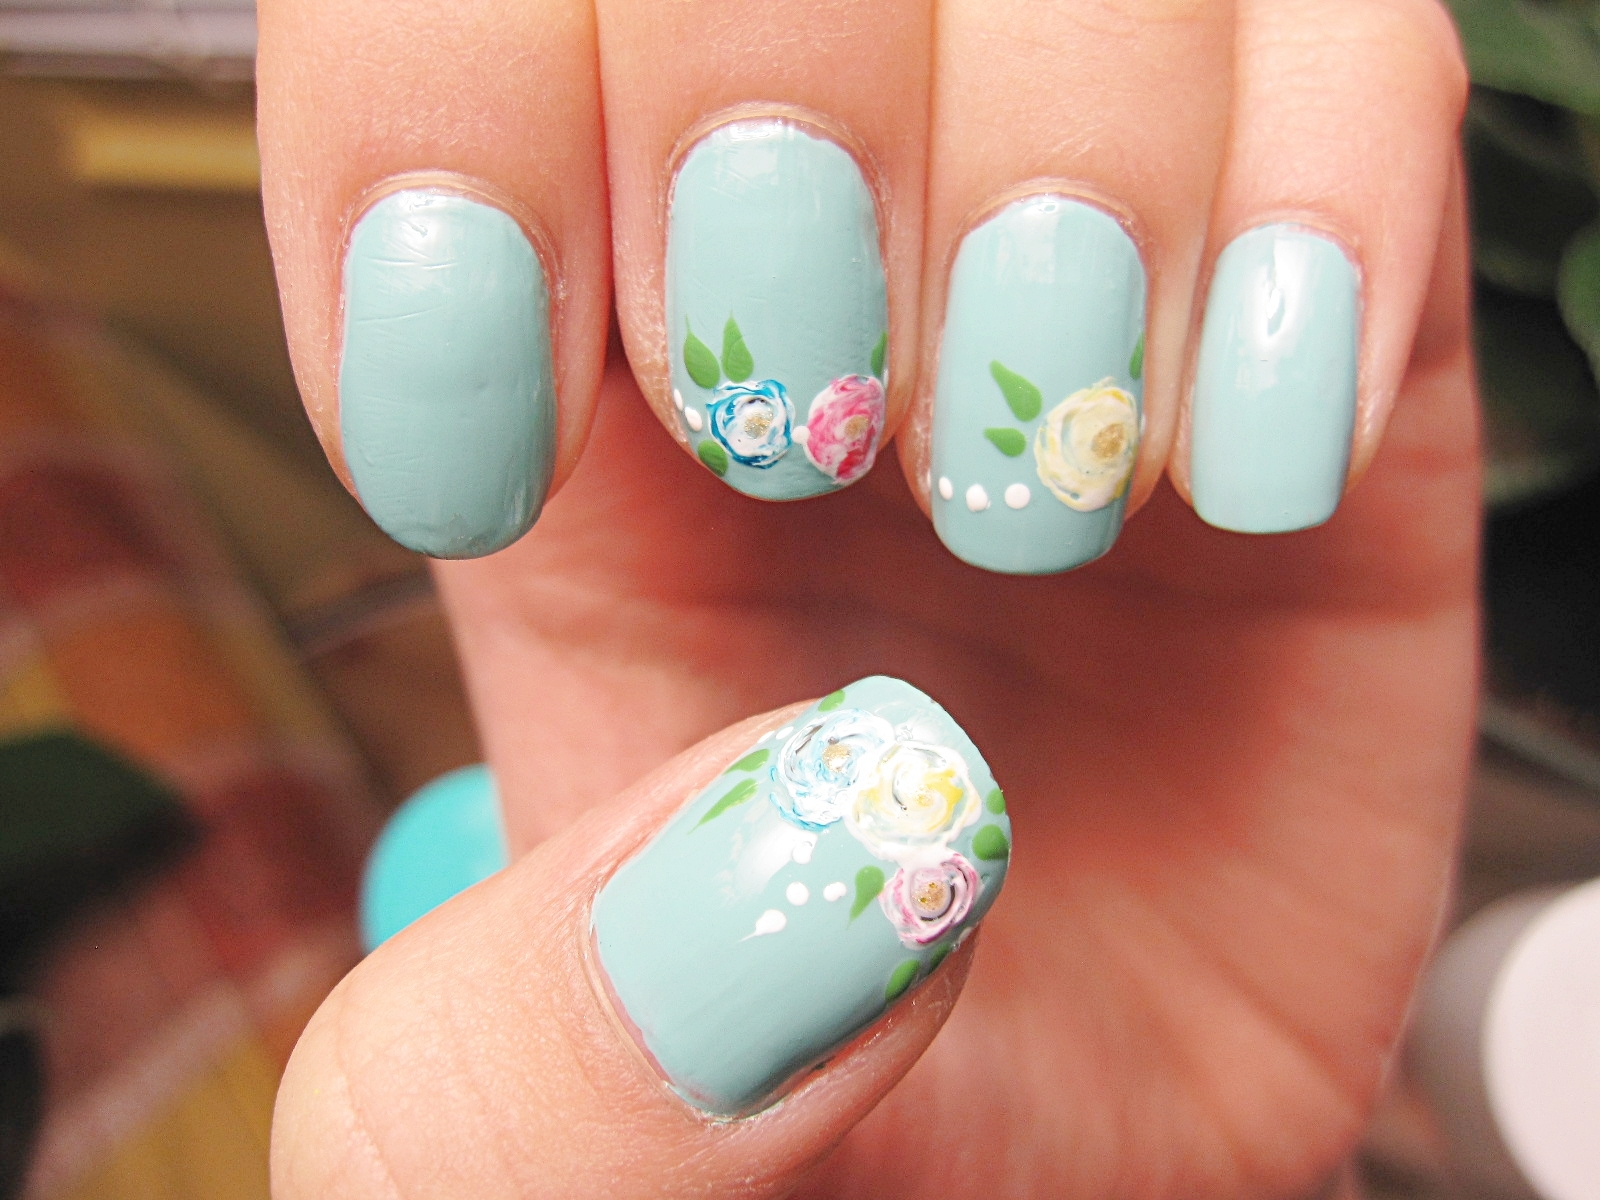 Nail Tutorial: Simplified Flower Bouquet